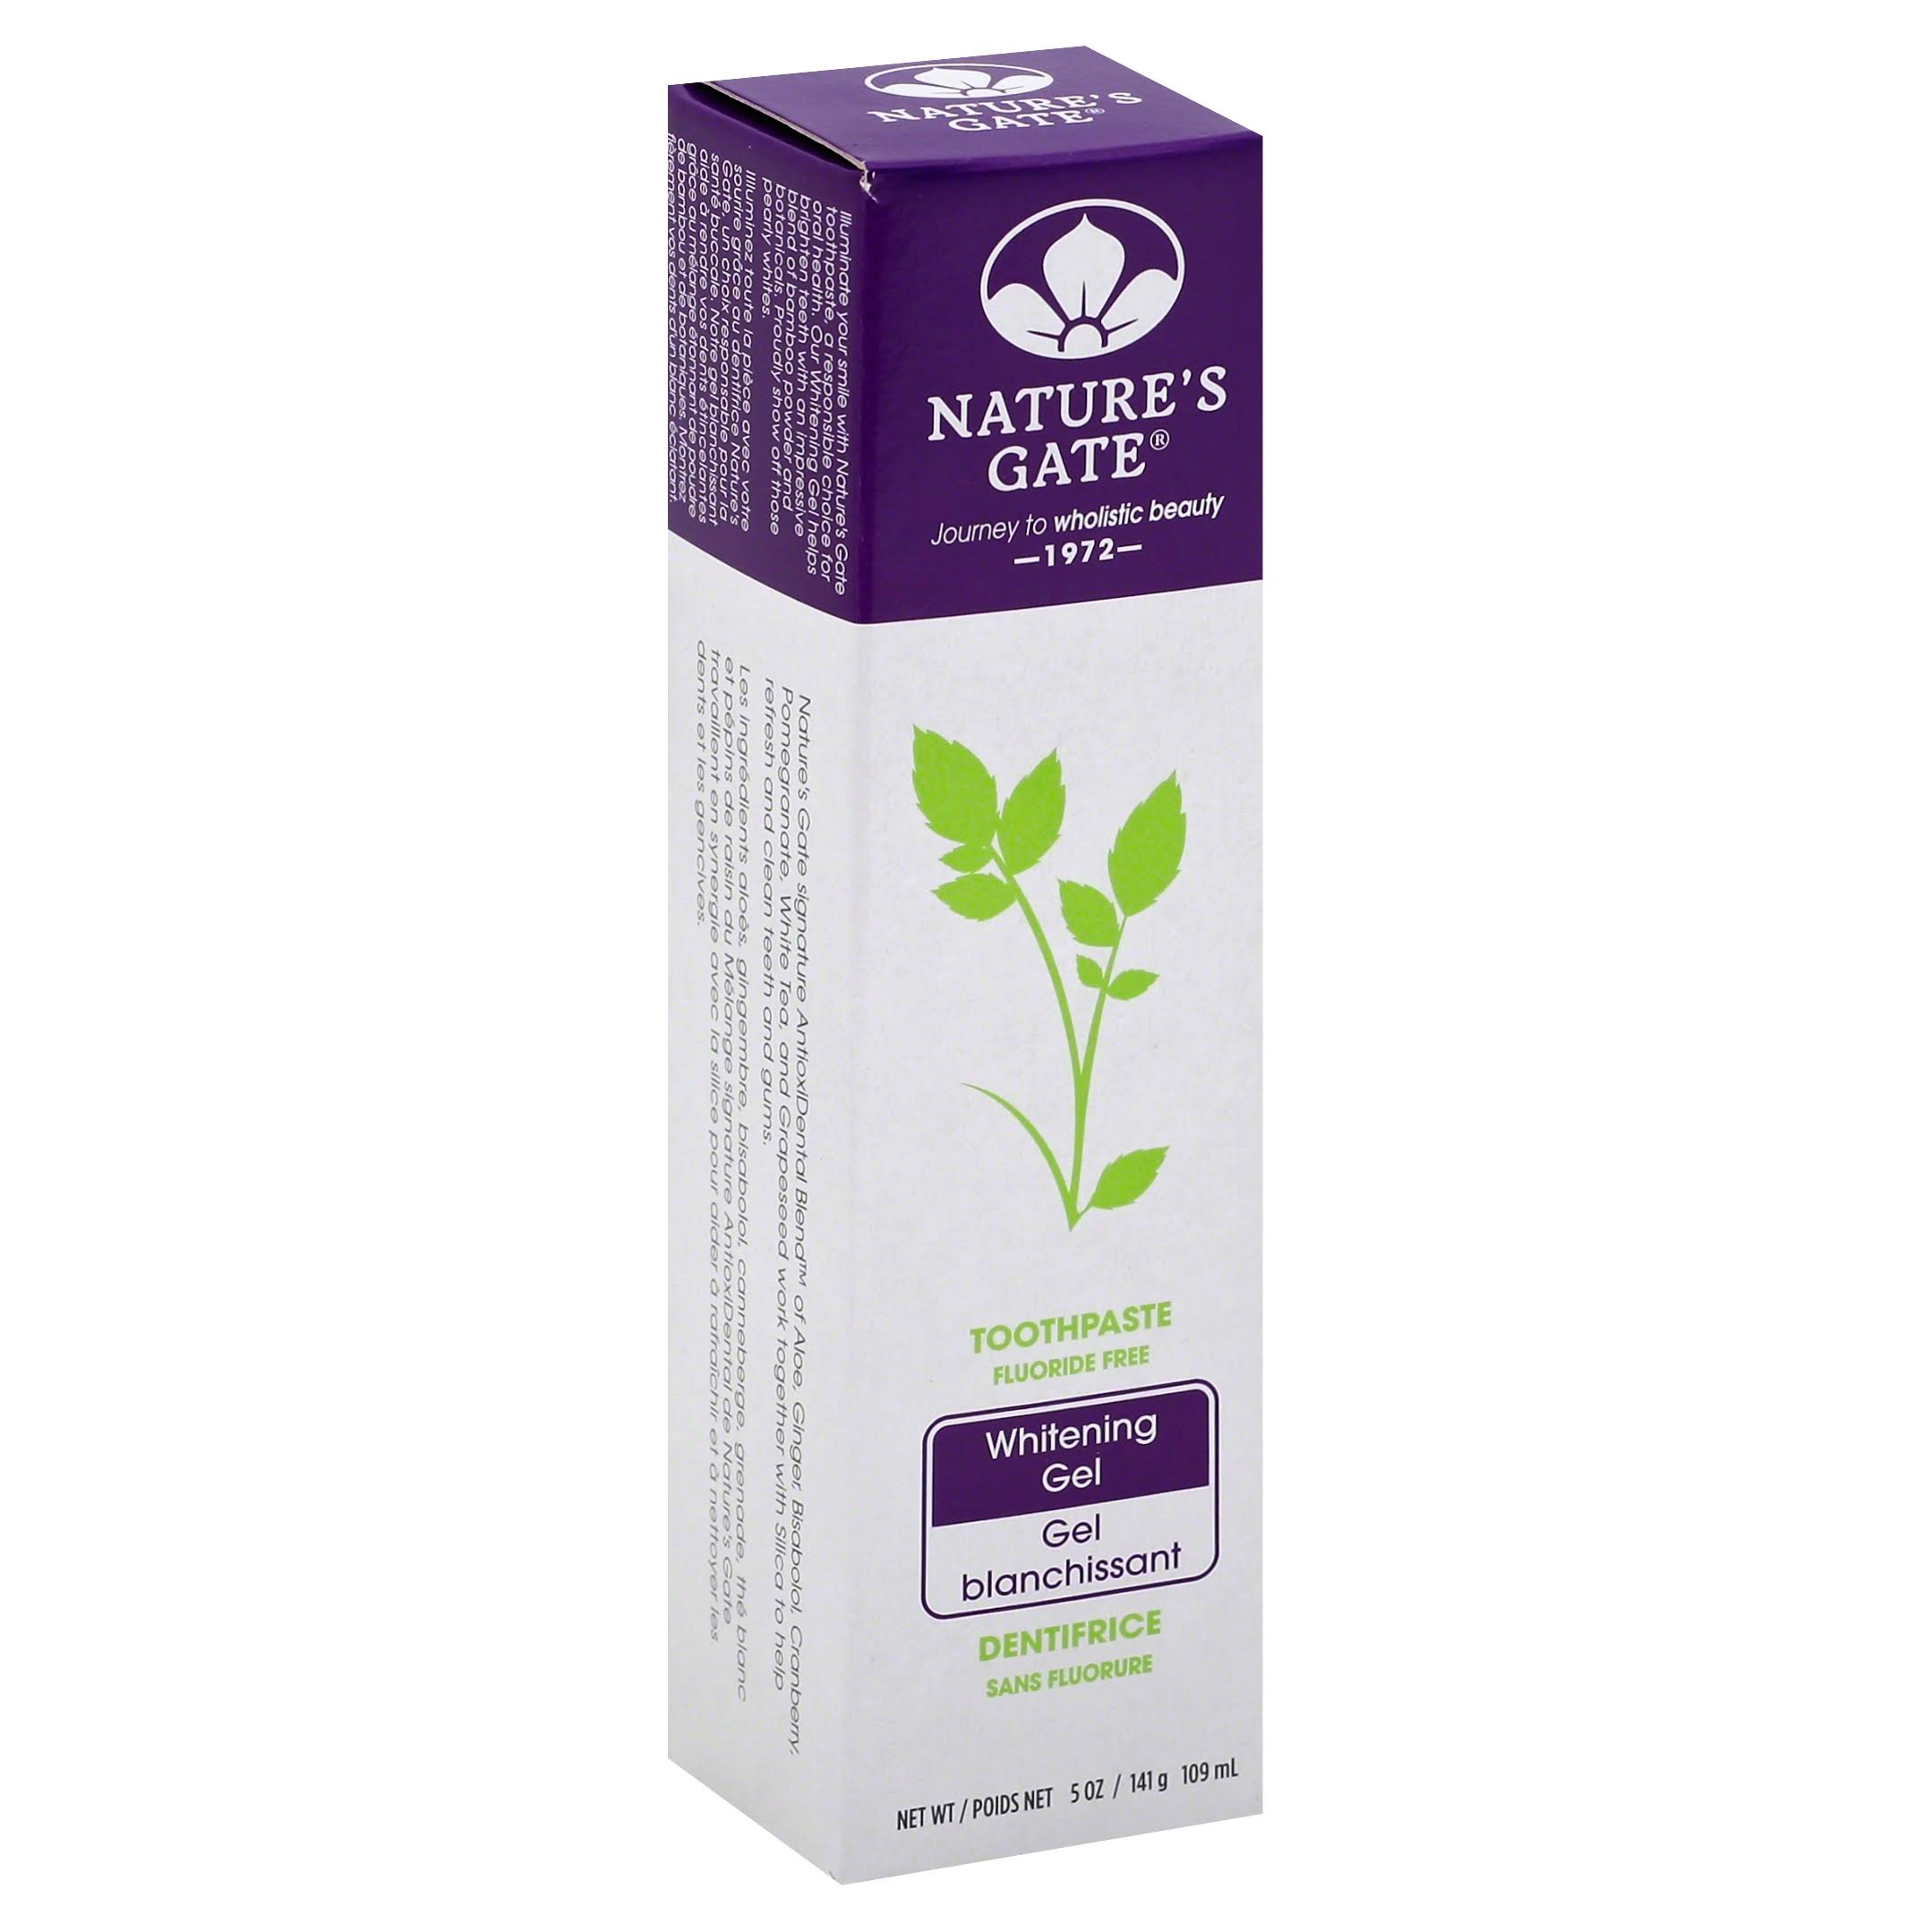 Nature's Gate Whitening Gel Toothpaste - 5oz